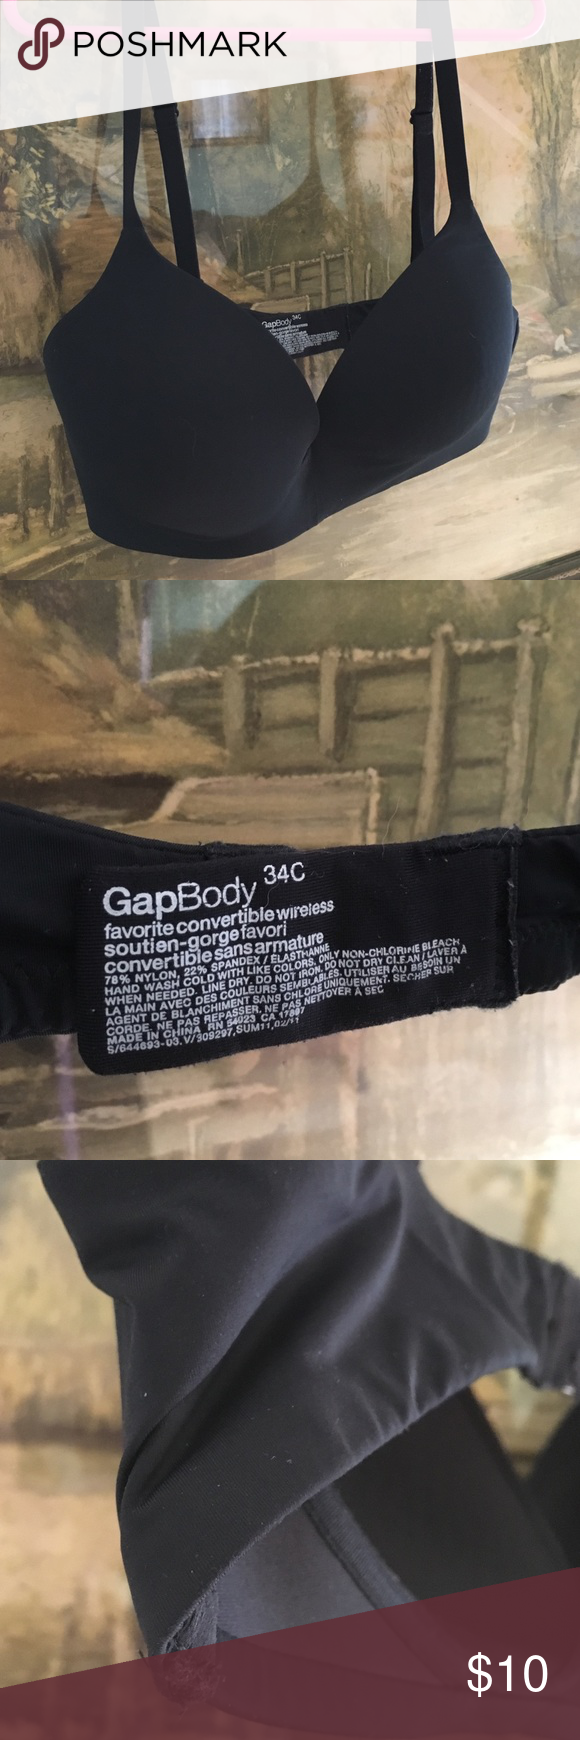 GAP Body  34C Tee Perfect! Has been worn  & shows a bit of wear on edges - but hooks & elastic in good condition- Convertible Wireless - Soft cups- Side boning - Jet black GAP Intimates & Sleepwear Bras